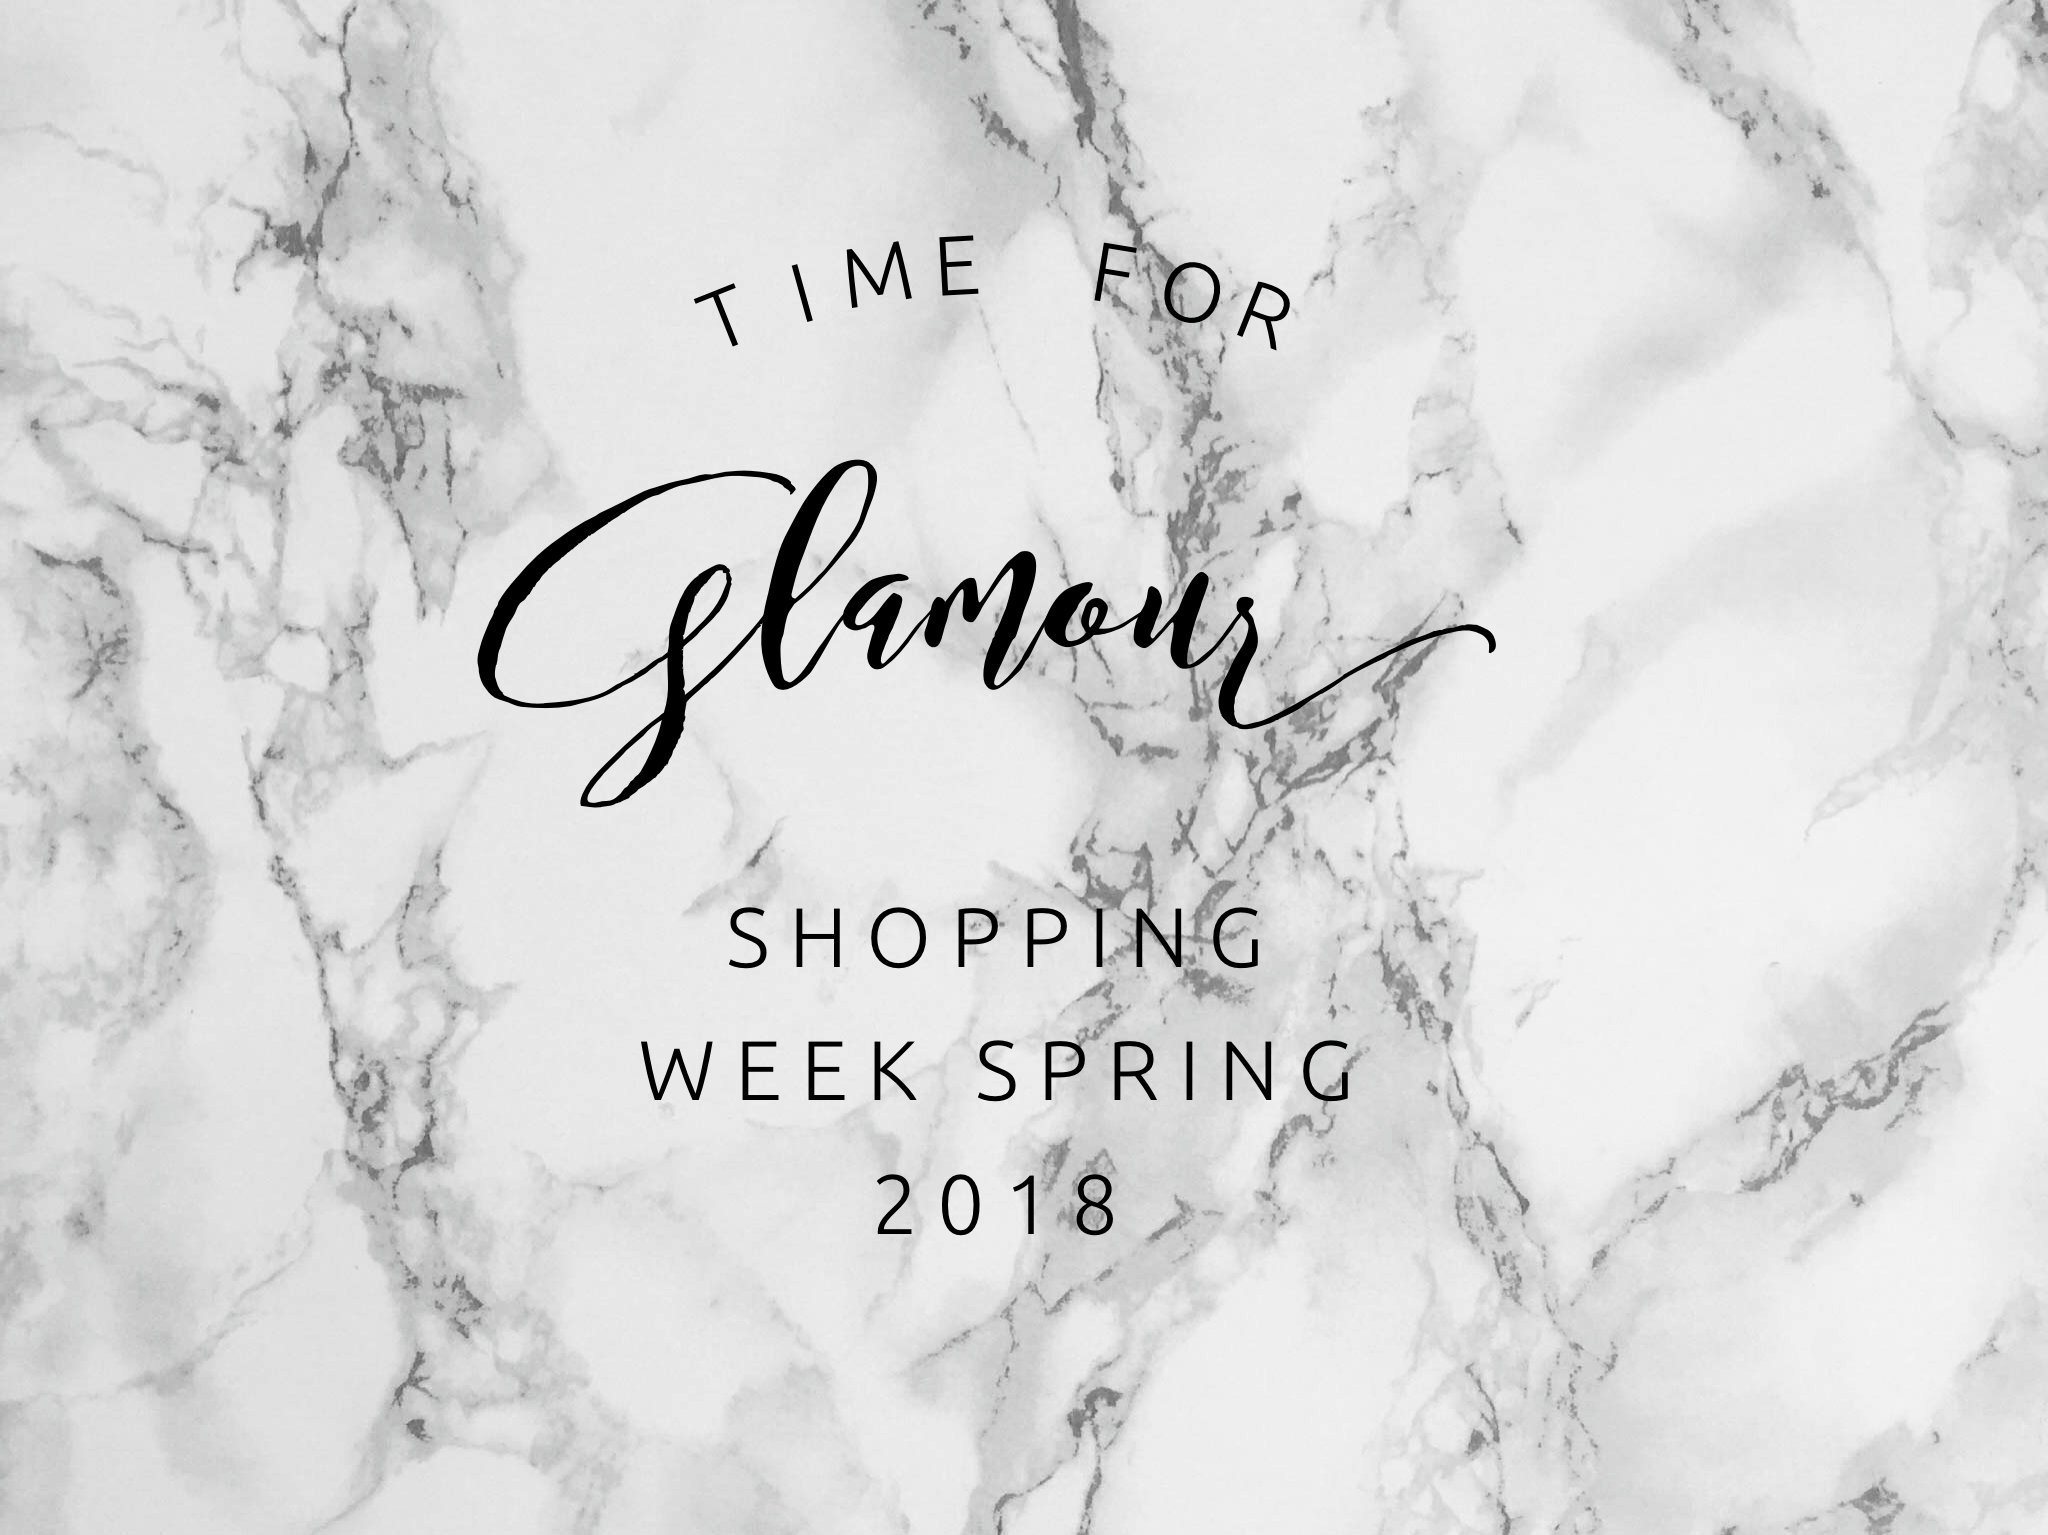 BEST OF GLAMOUR Shopping Week Ostern 2018